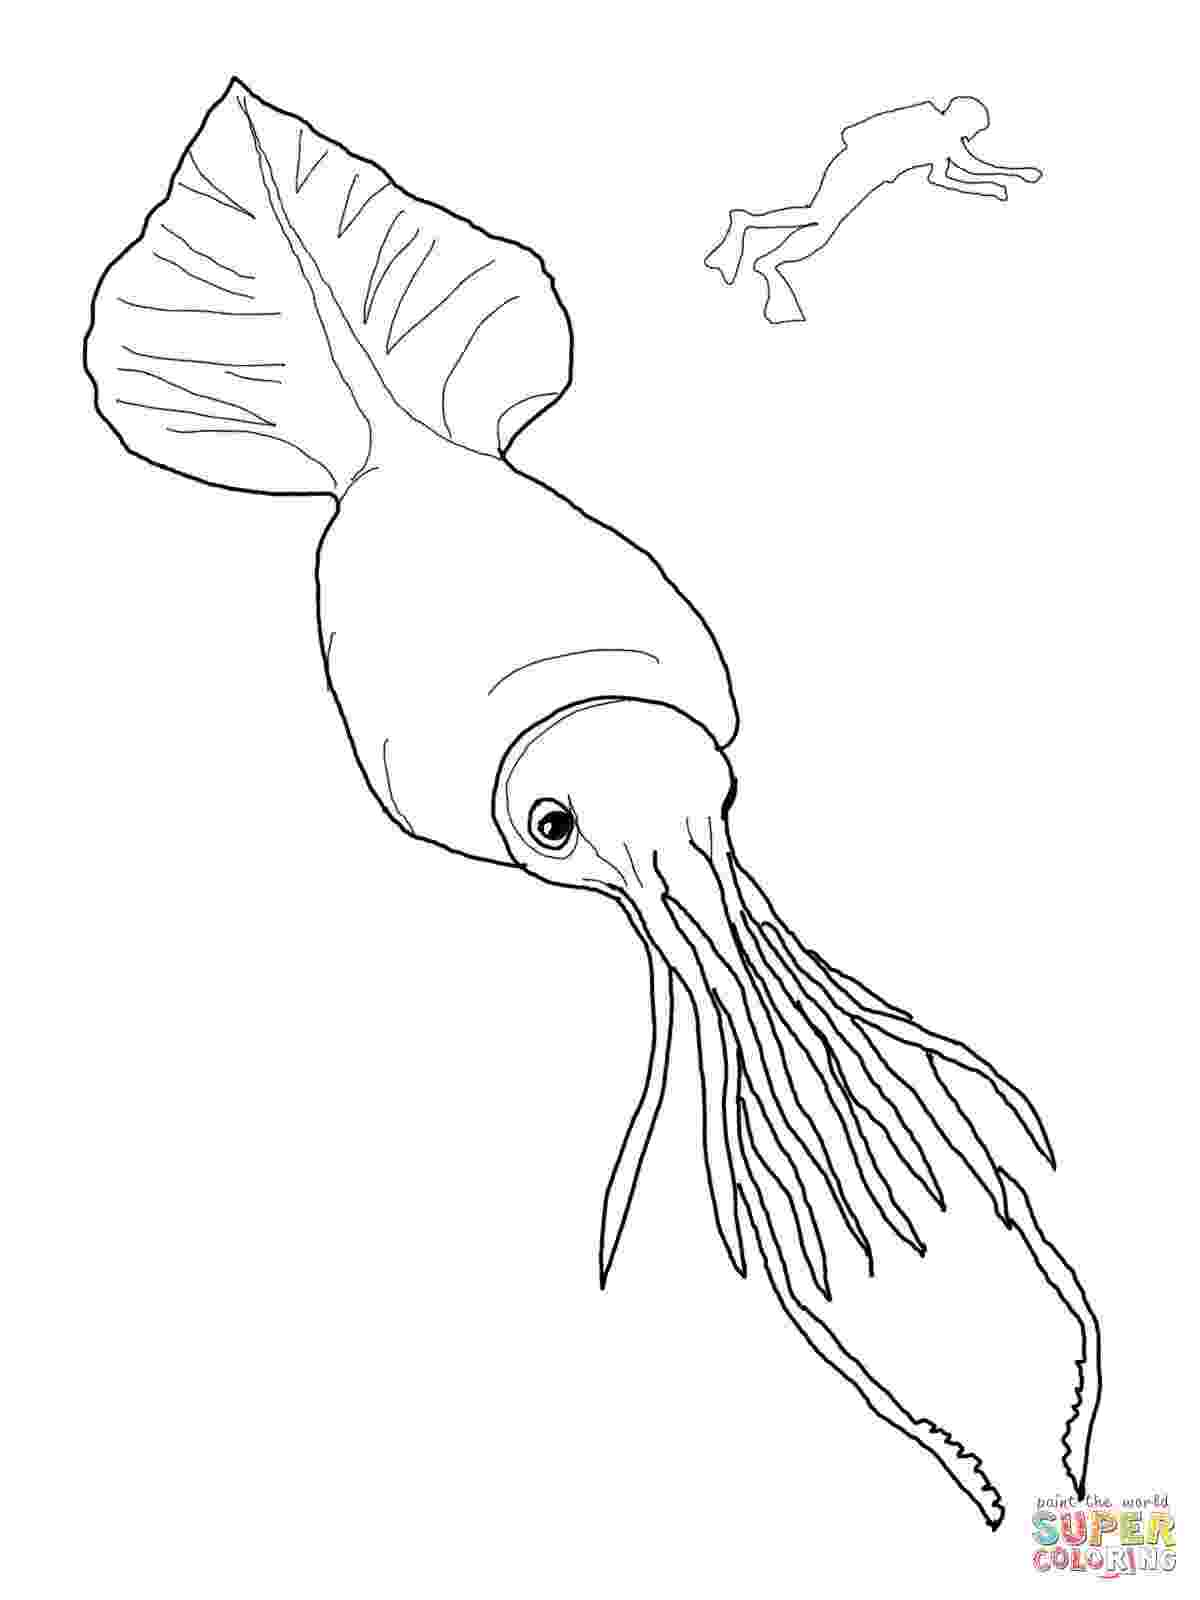 giant squid coloring pages squid coloring pages to printable marine animals pages giant squid coloring